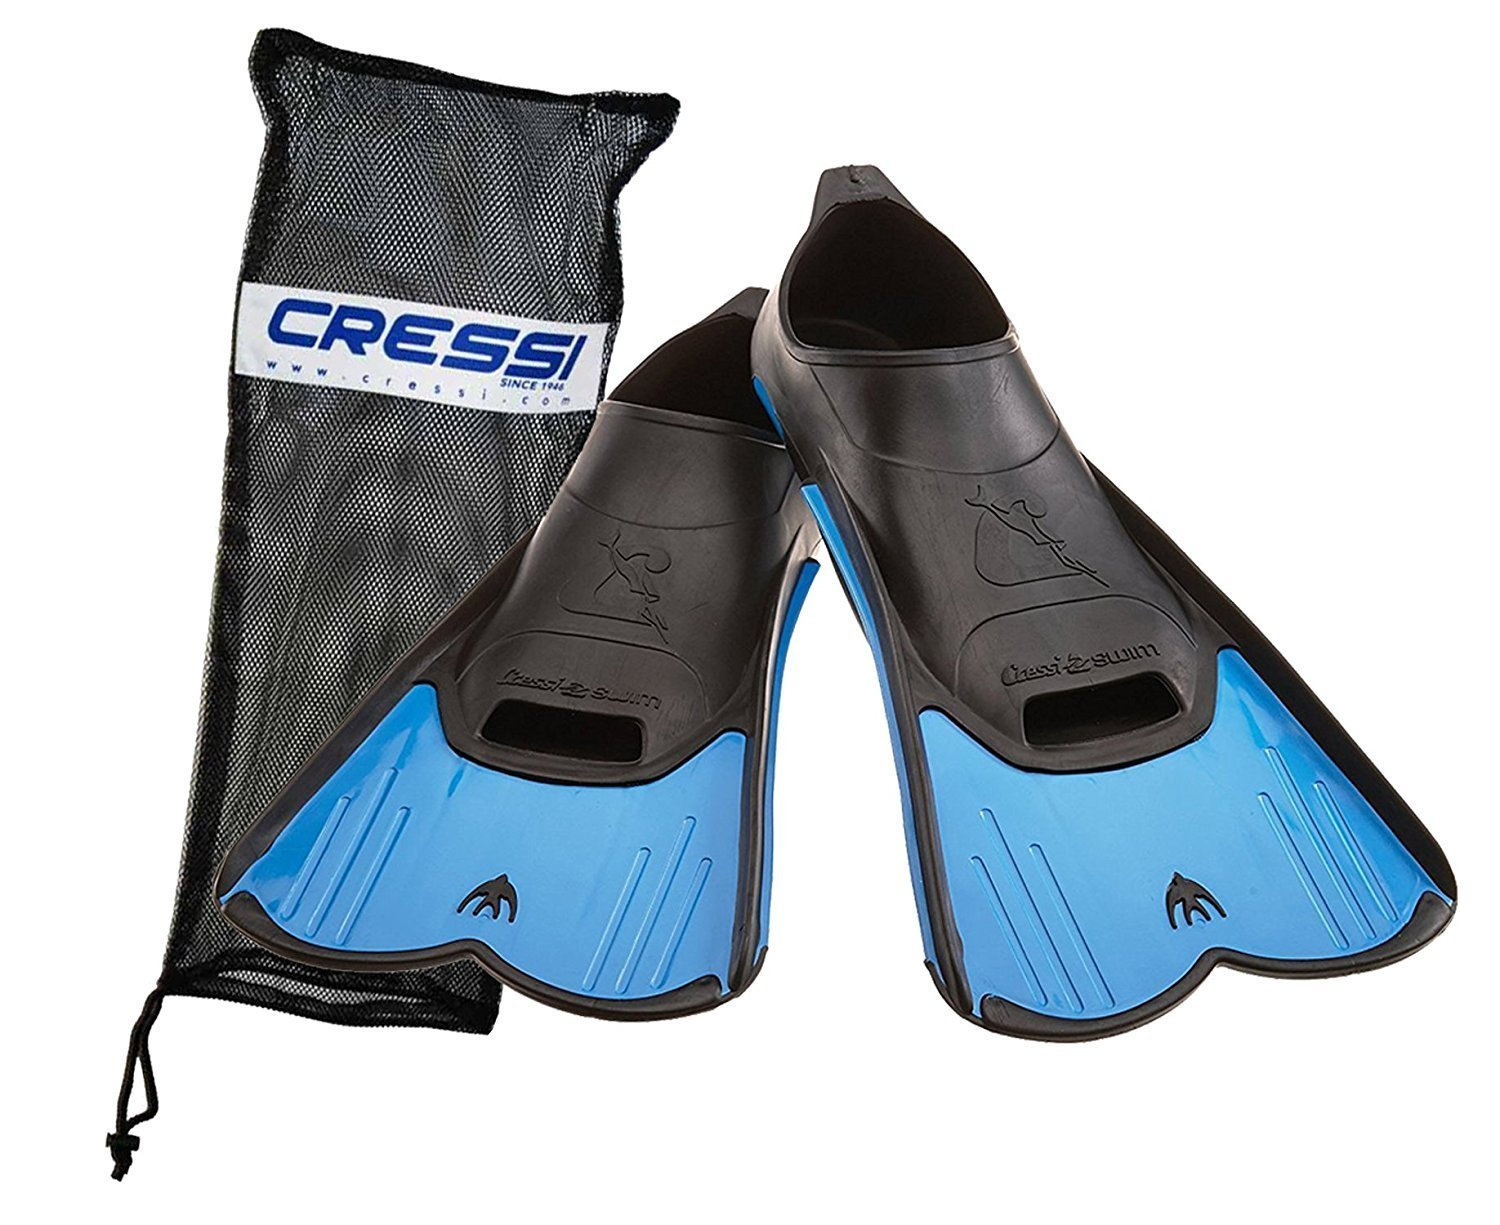 Cressi Light Fin Pool and Training Short Blade Fin with Bag, 5.5/6.5 by Cressi (Image #2)